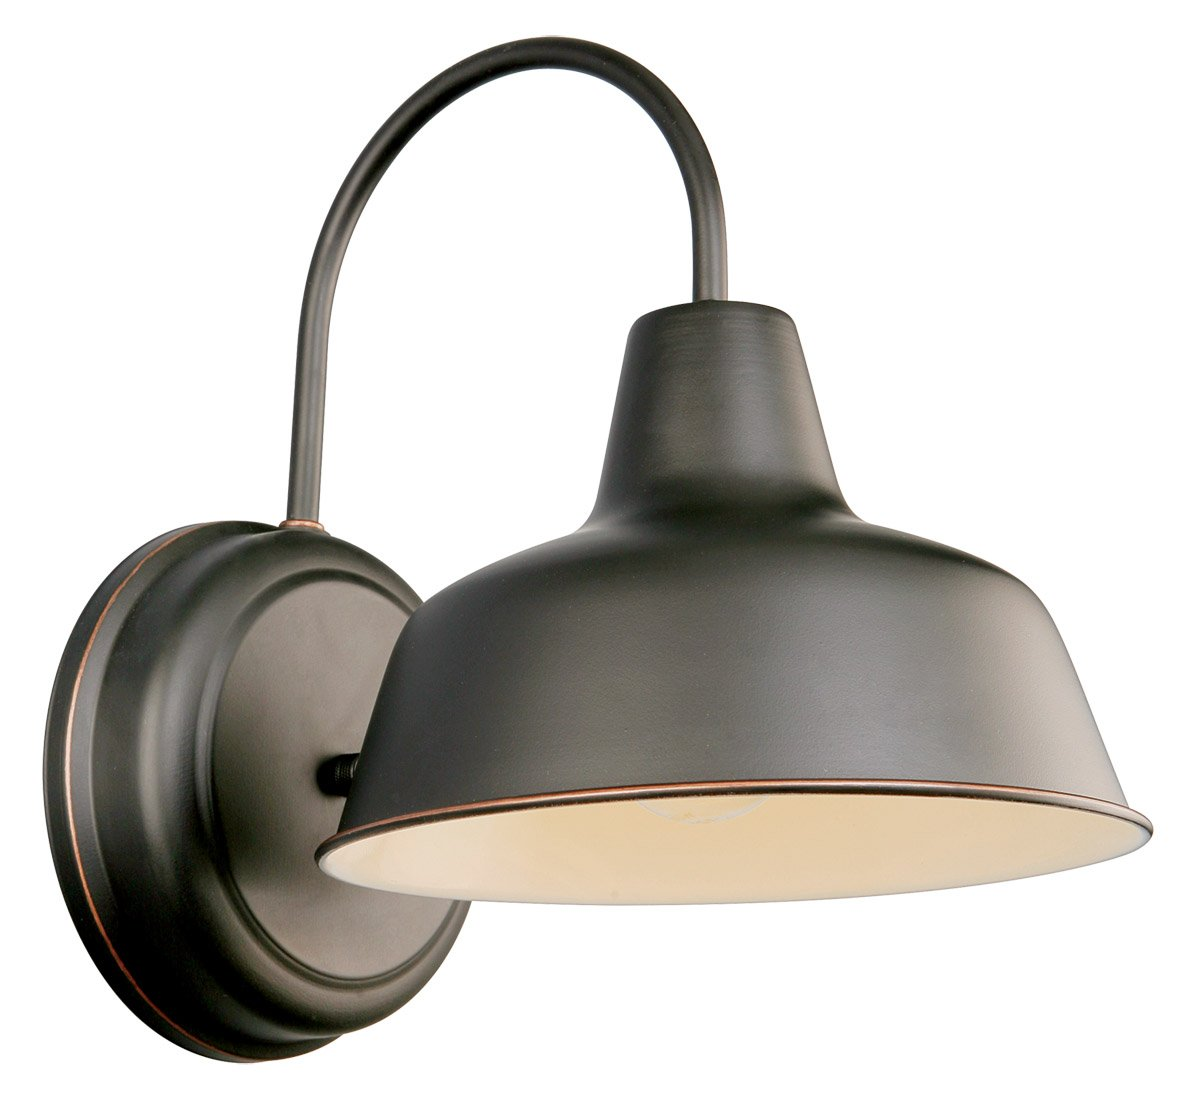 Design House 519504 Mason 1 Light Wall Light Oil Rubbed Bronze - Outdoor Post Light Accessories - Amazon.com  sc 1 st  Amazon.com & Design House 519504 Mason 1 Light Wall Light Oil Rubbed Bronze ... azcodes.com